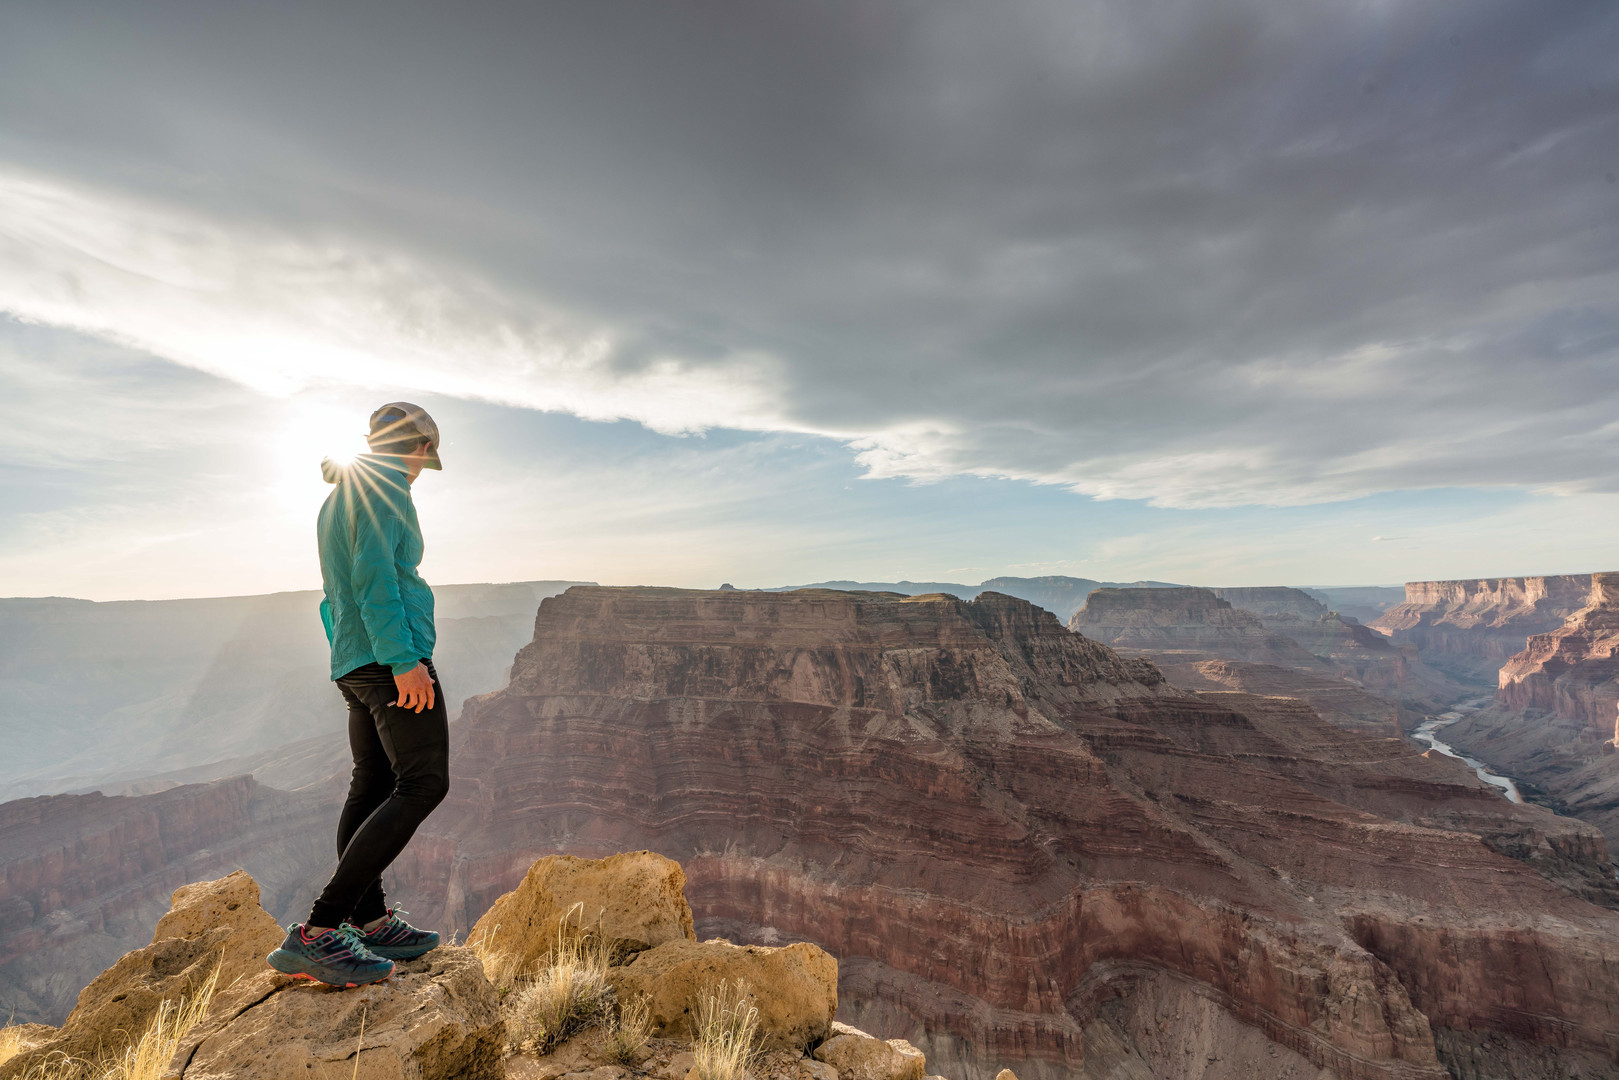 Elyssa Shalla viewing the Grand Canyon near The Confluence